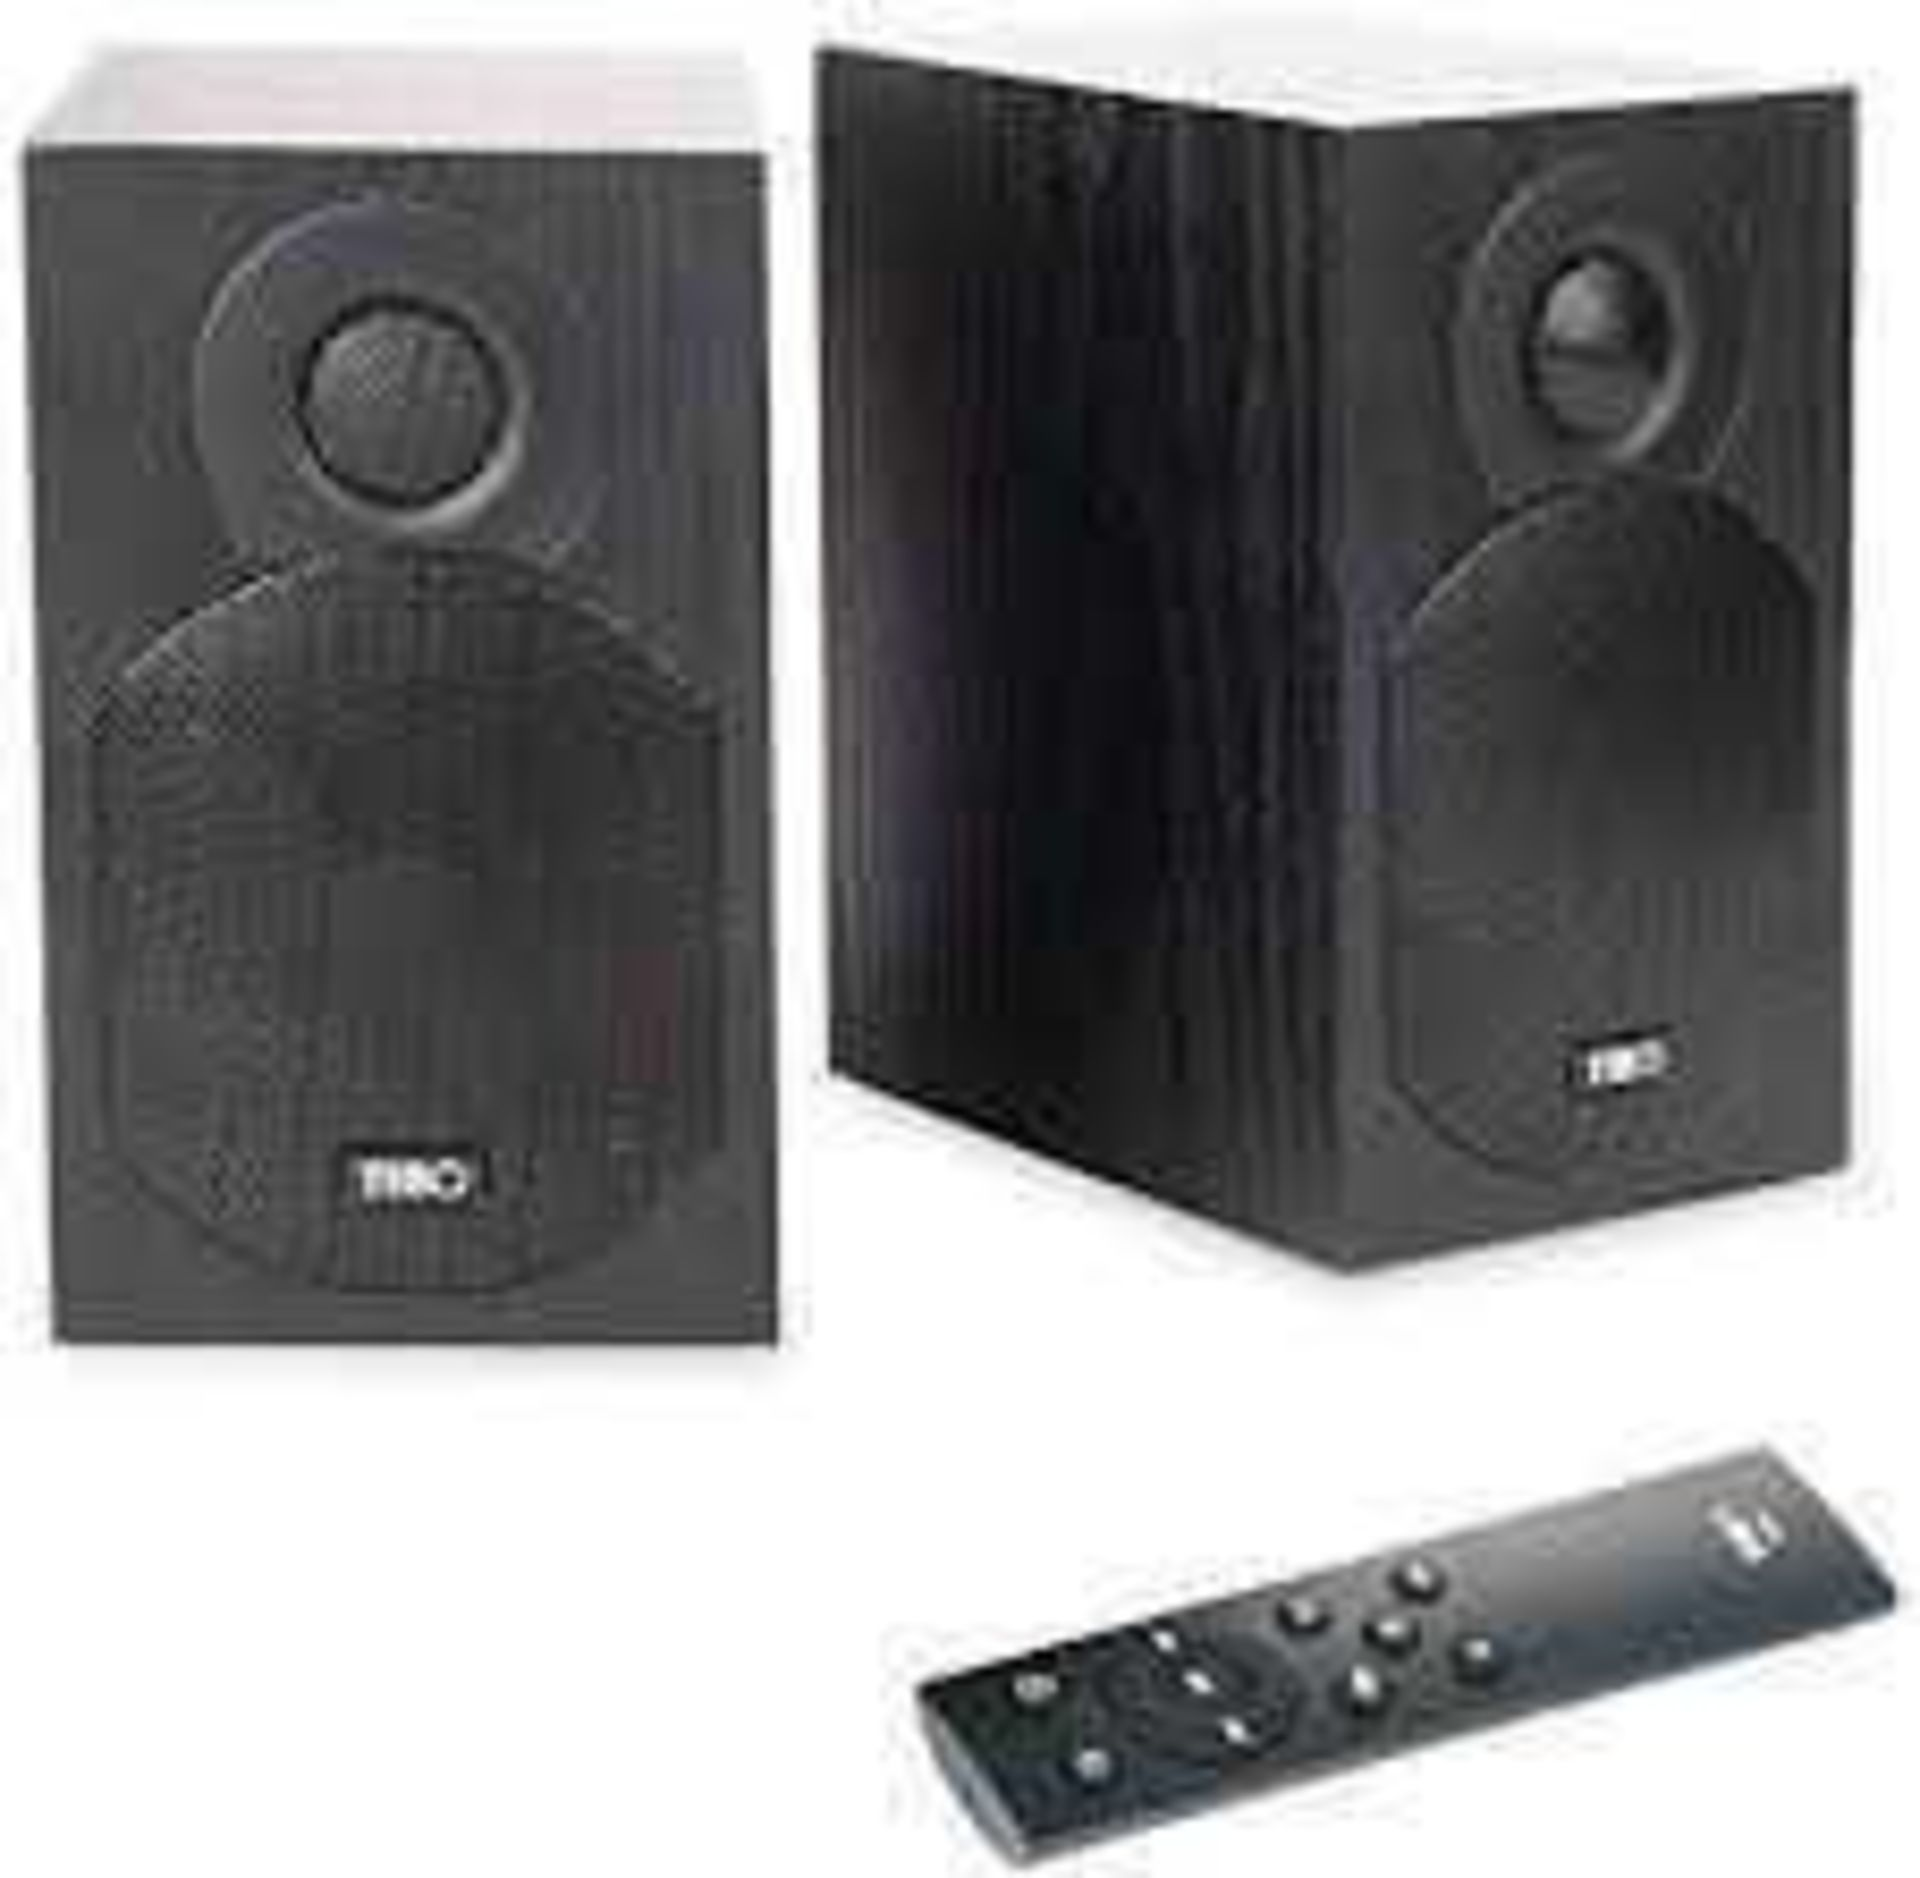 RRP £120 Boxed Tibo Plus 1.1 (Black) Bluetooth Active Speakers - Pair